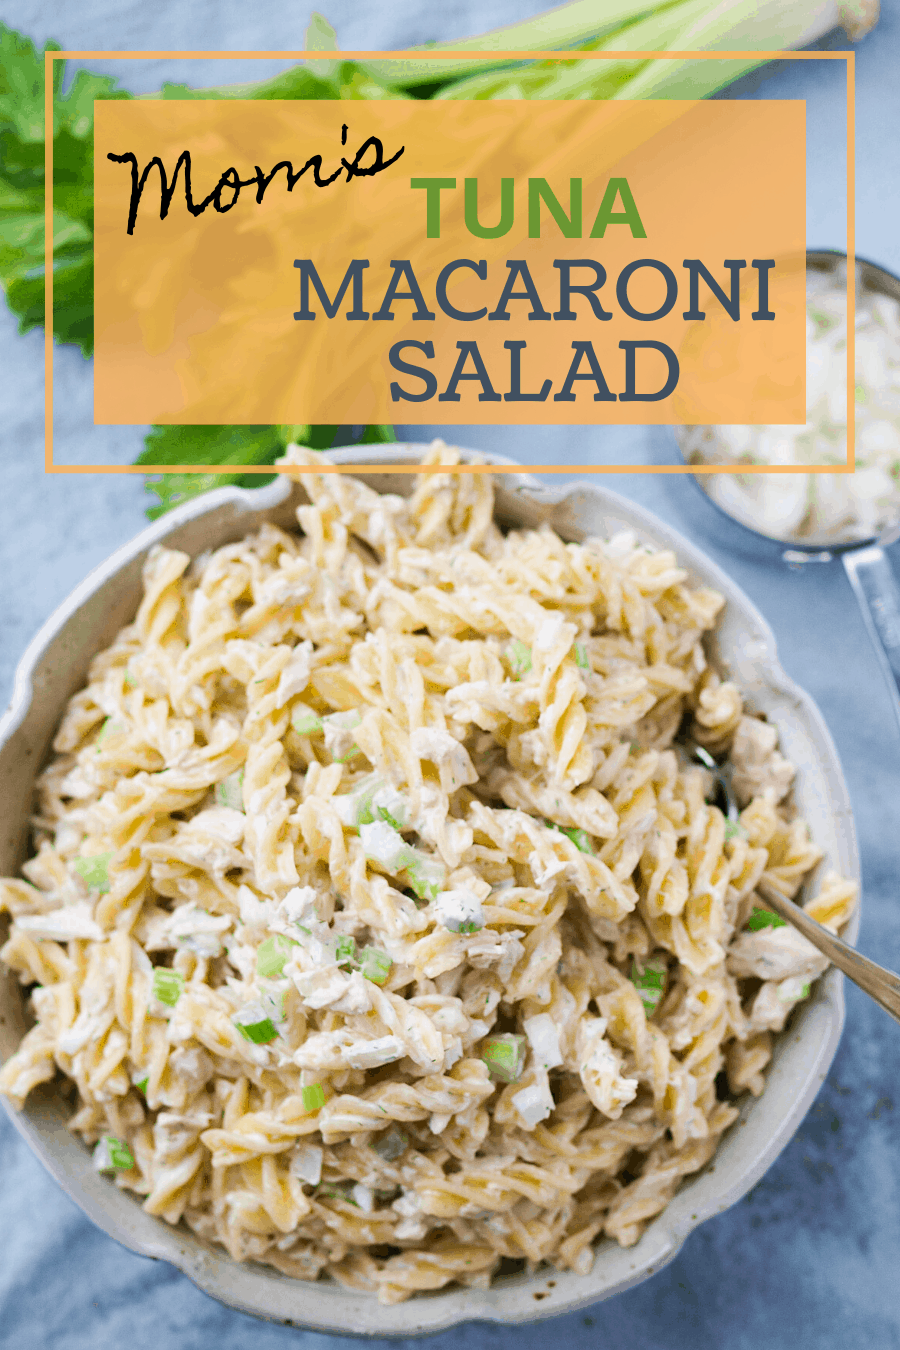 A pinterest pin for tuna macaroni salad. A large bowl of tuna macaroni salad in front of diced onions, a stalk of celery.